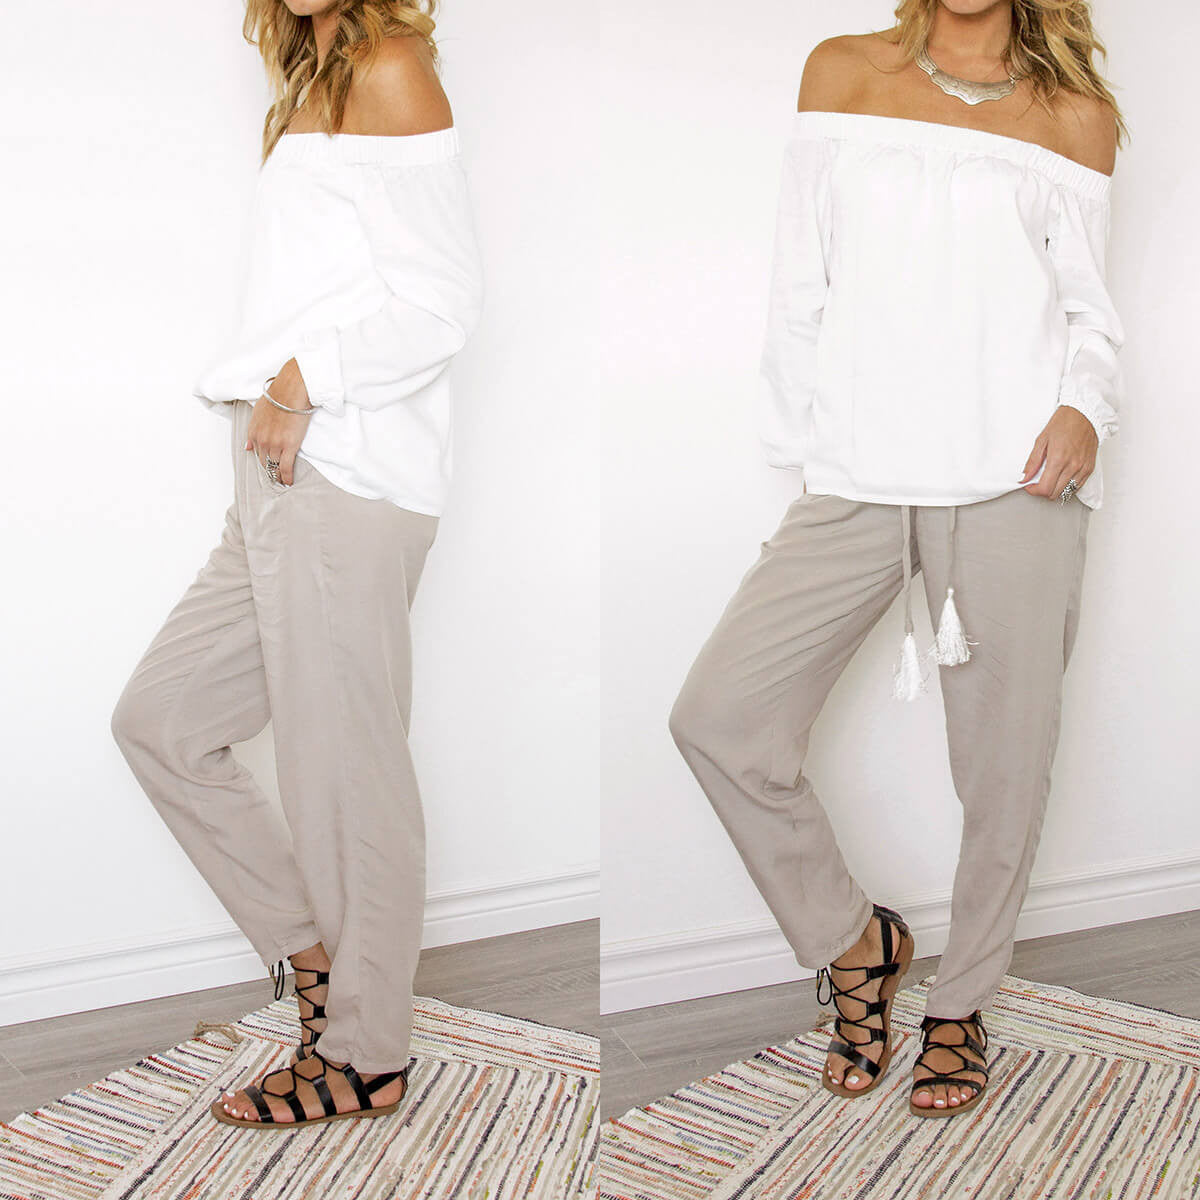 An Ethical, Seasonless Clothing Collection for Women on the Go - Delos Pants and Santorini Off the Shoulder Top, Sololu